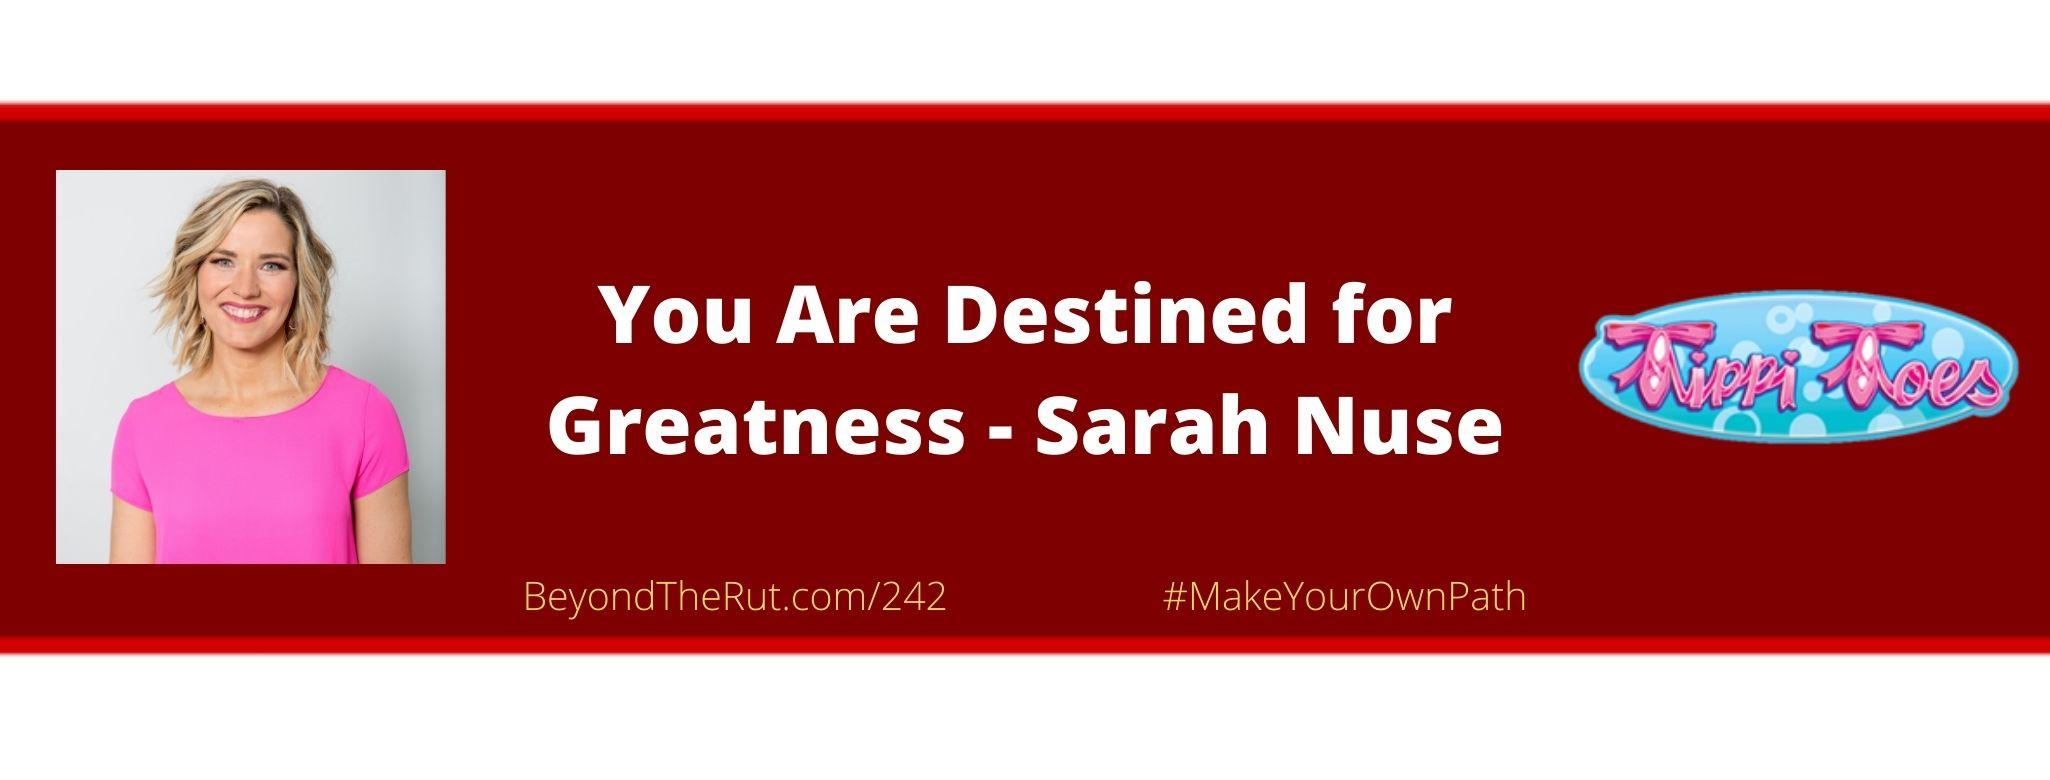 Sarah Nuse Destined for Greatness